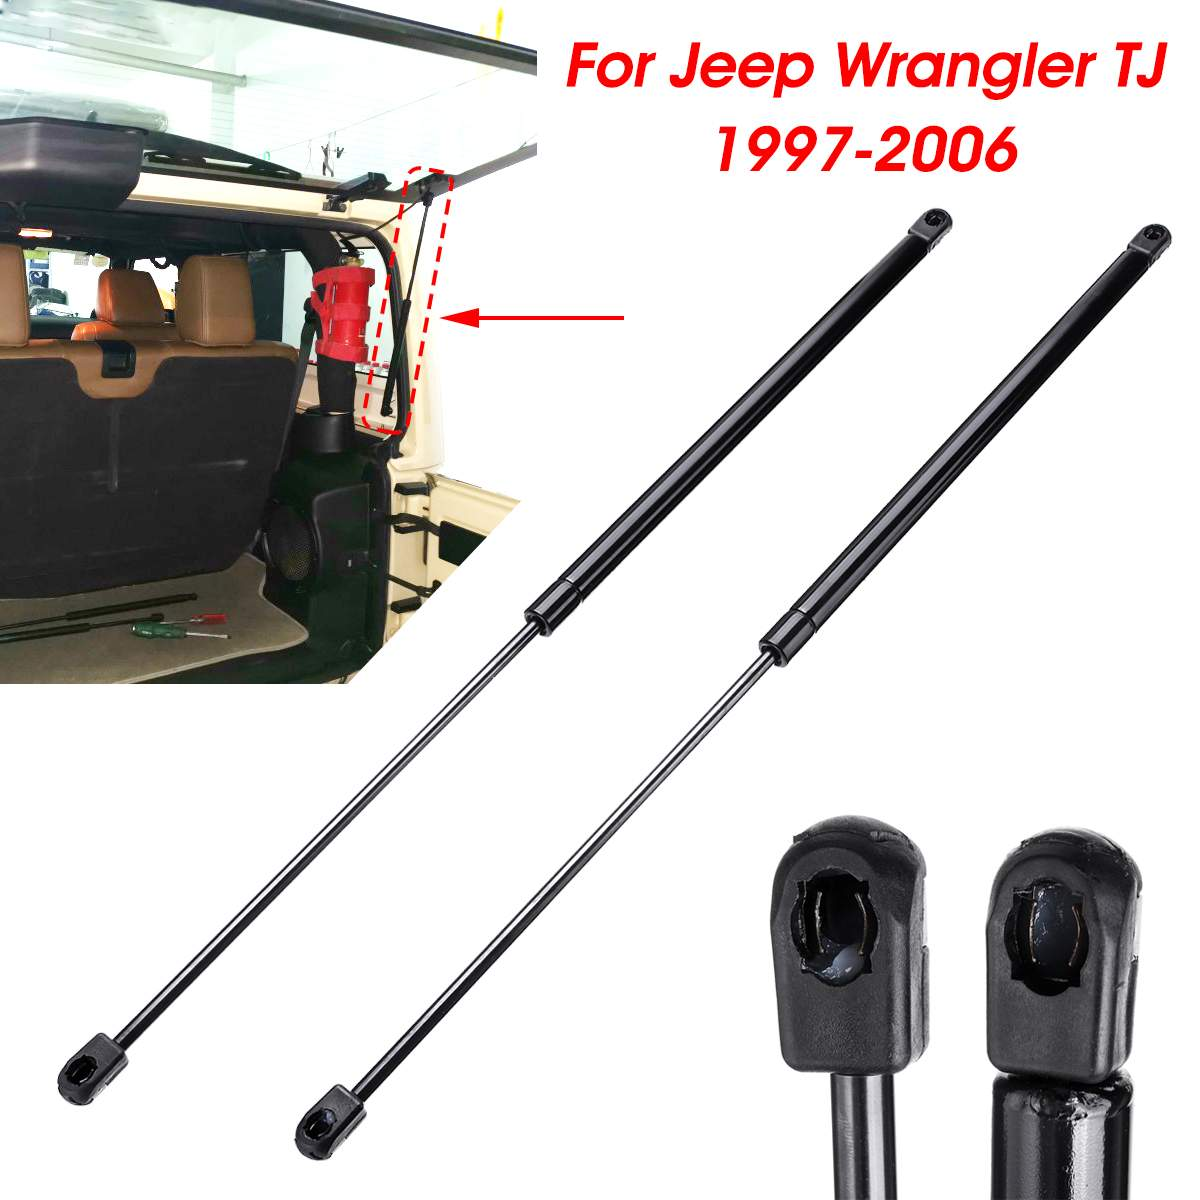 1Pair Car Rear Trunk Hood Lift Supports Props Rod Arm Shocks Strut Bars For Jeep For Wrangler TJ 1997-2006 55076310AB 42491Pair Car Rear Trunk Hood Lift Supports Props Rod Arm Shocks Strut Bars For Jeep For Wrangler TJ 1997-2006 55076310AB 4249